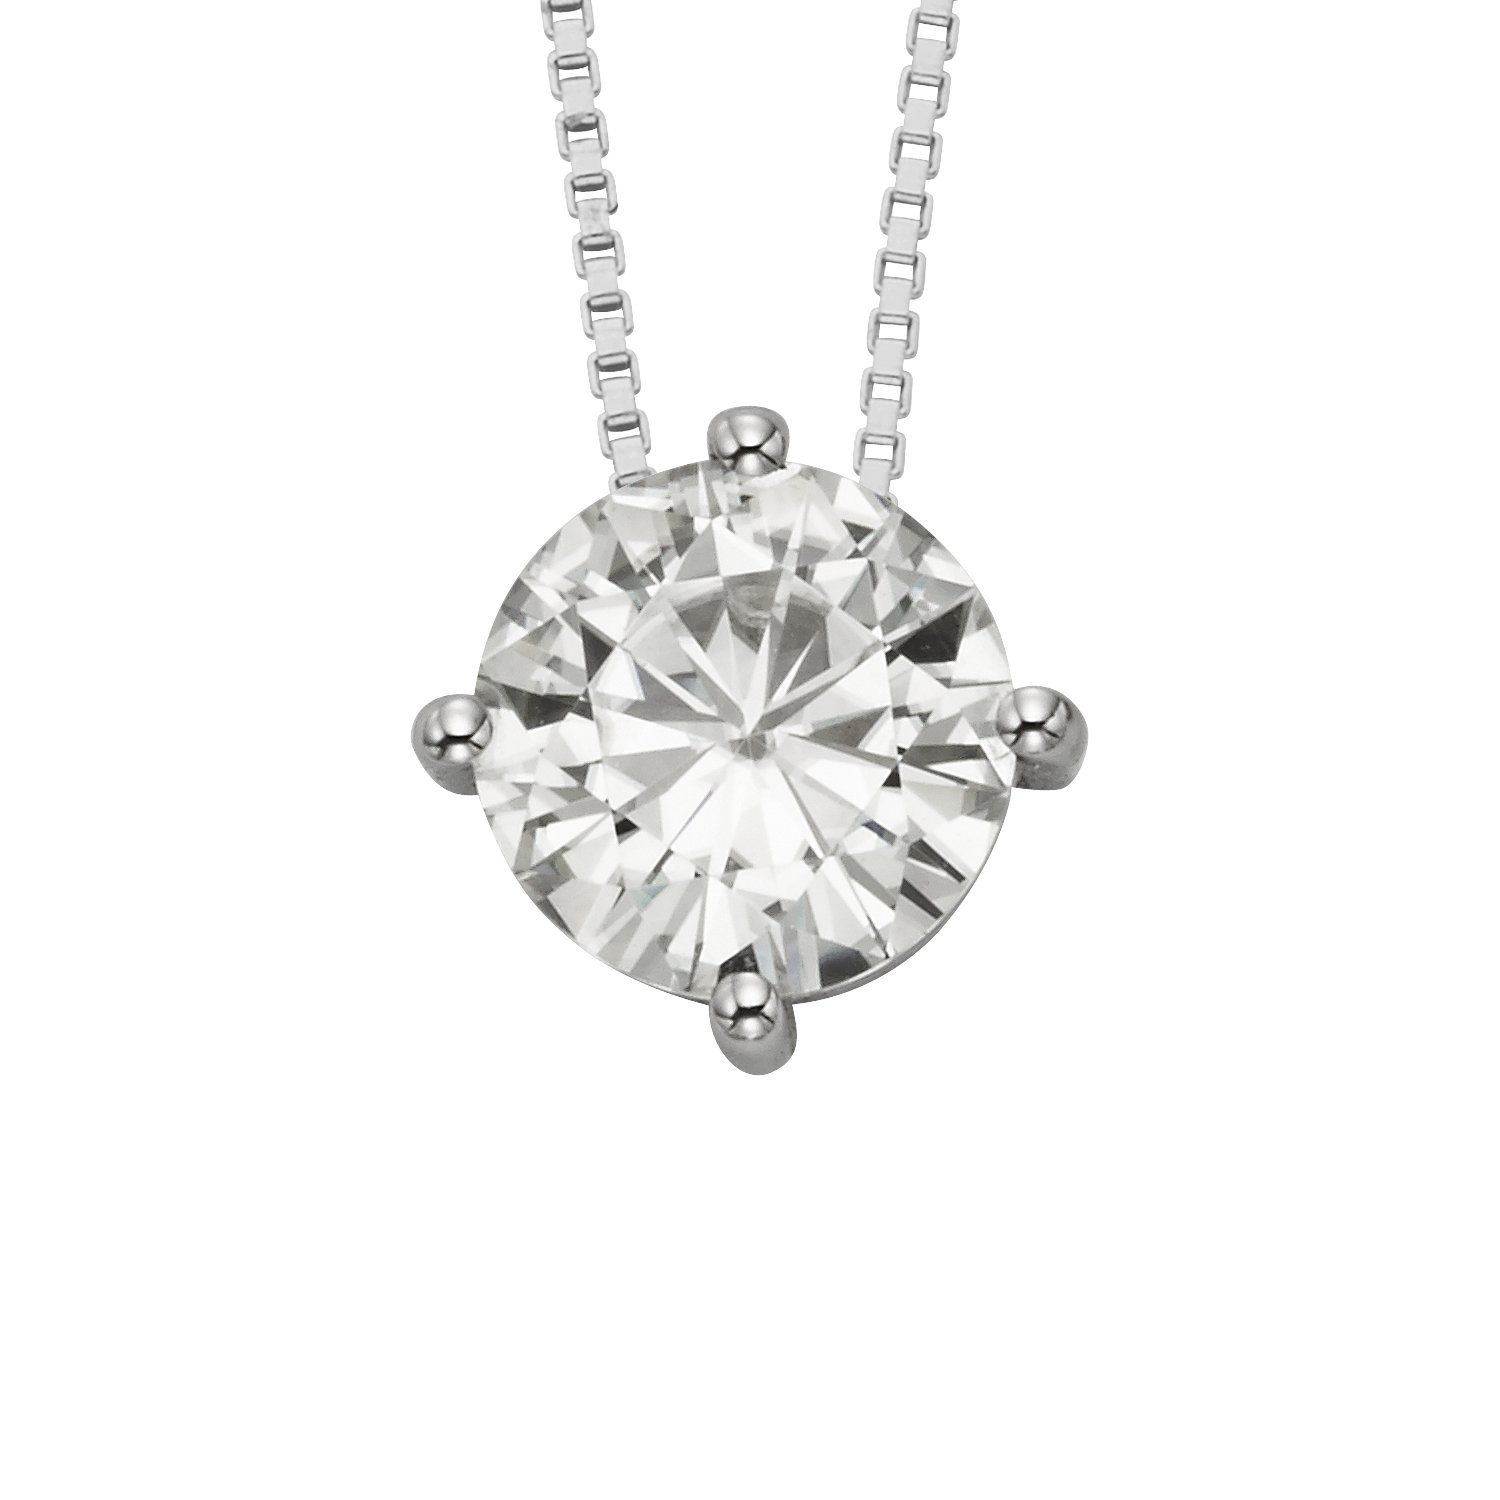 Round Brilliant Cut 8.0mm Moissanite Pendant Necklace, 1.90ct DEW By Charles & Colvard